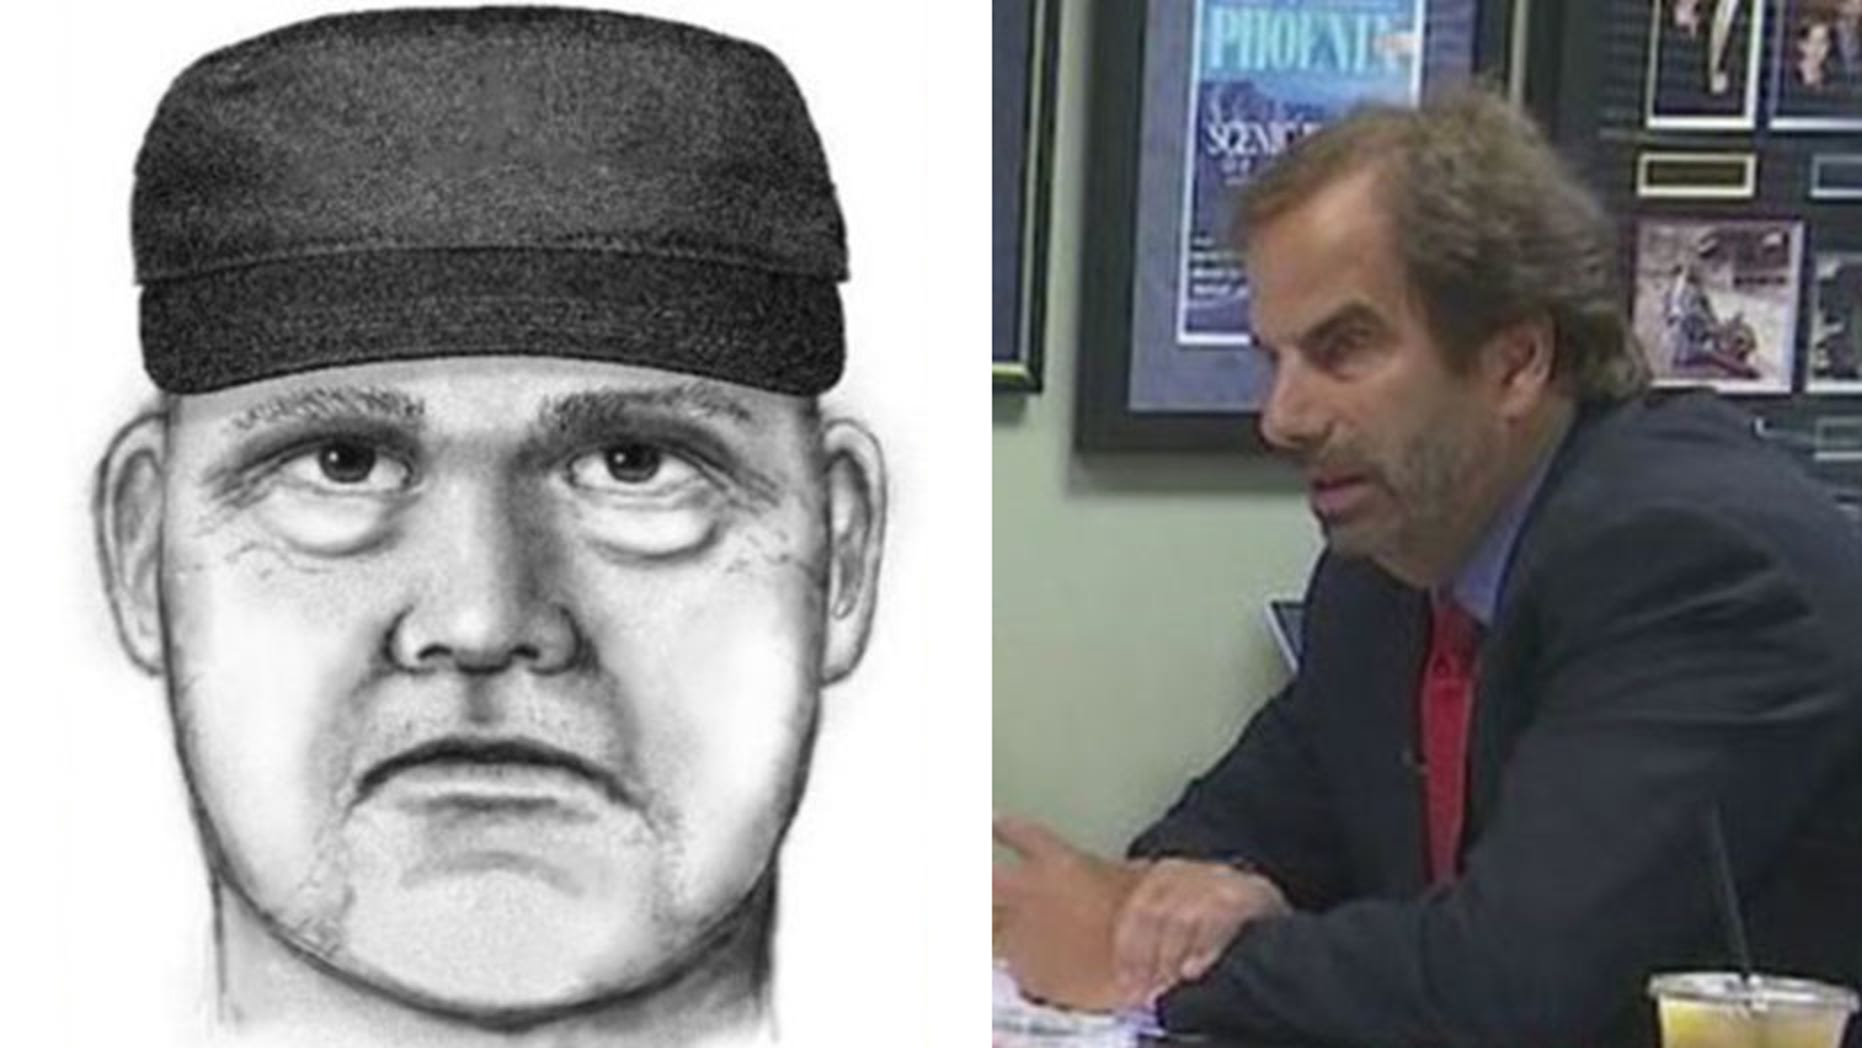 Police have released a sketch of the suspect believed to have killed forensic psychiatrist Steven Pitt outside his office in Scottsdale Thursday.